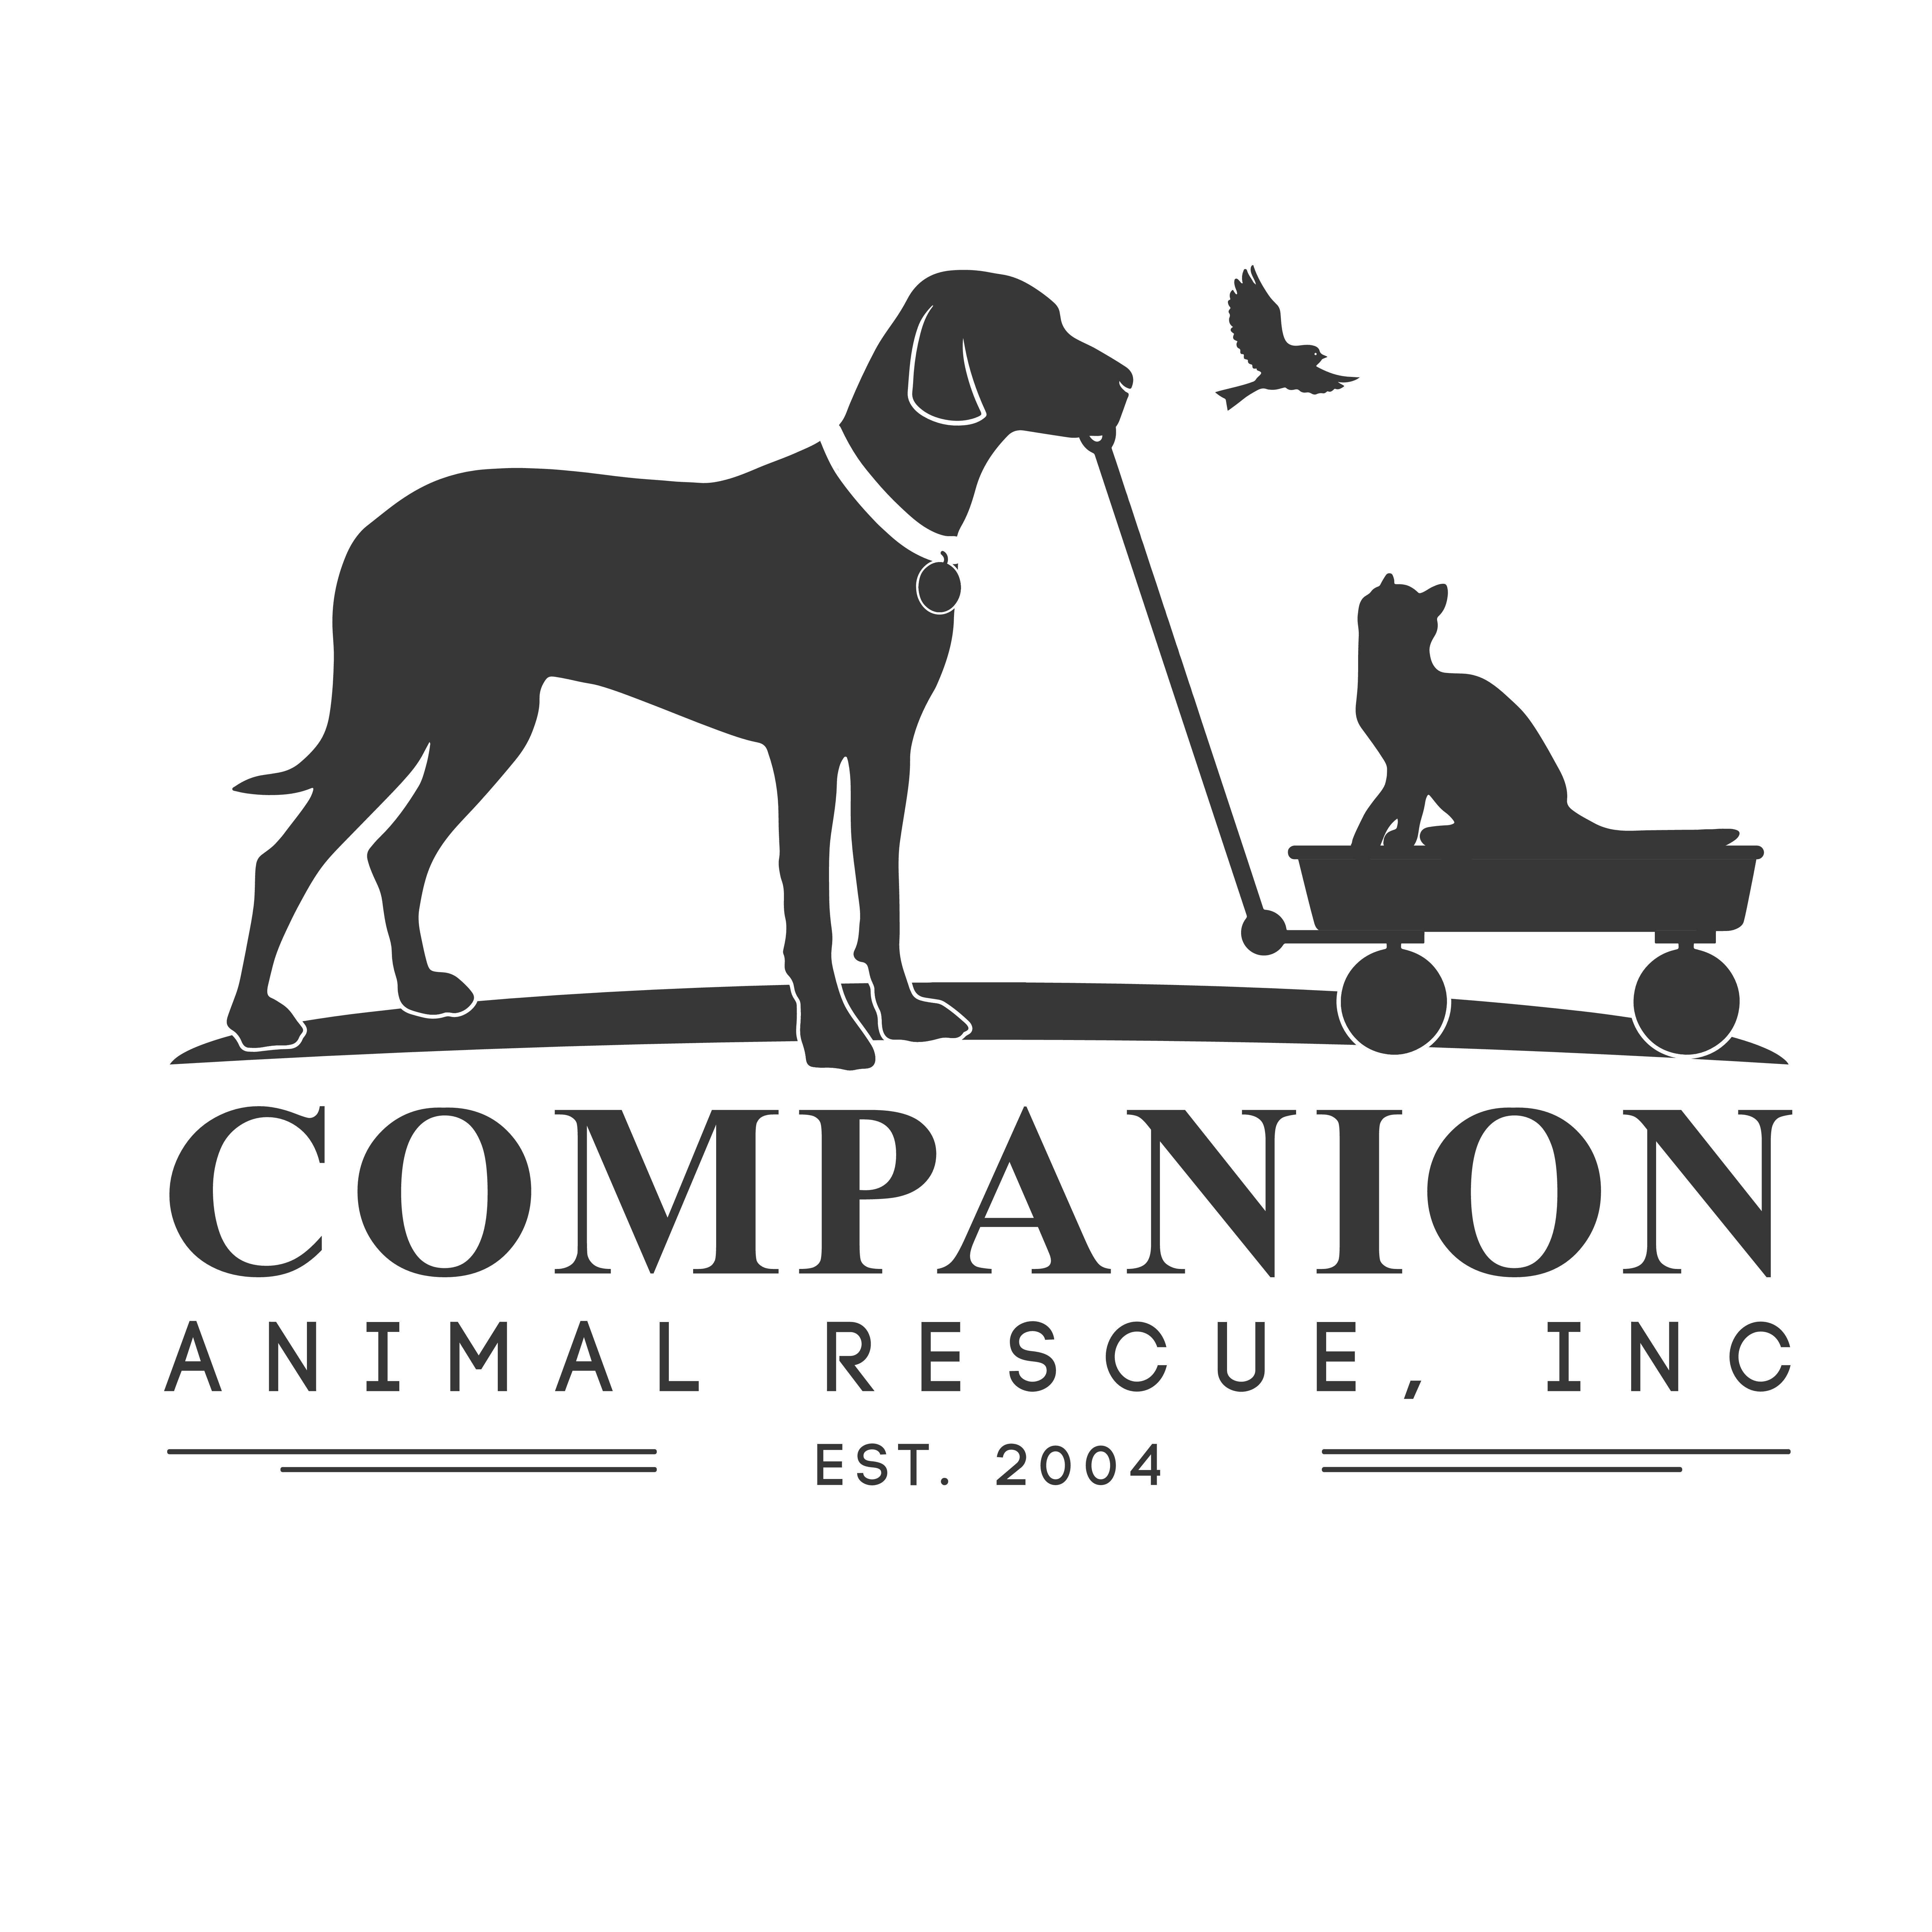 Animal Rescue needs a sophisticated logo